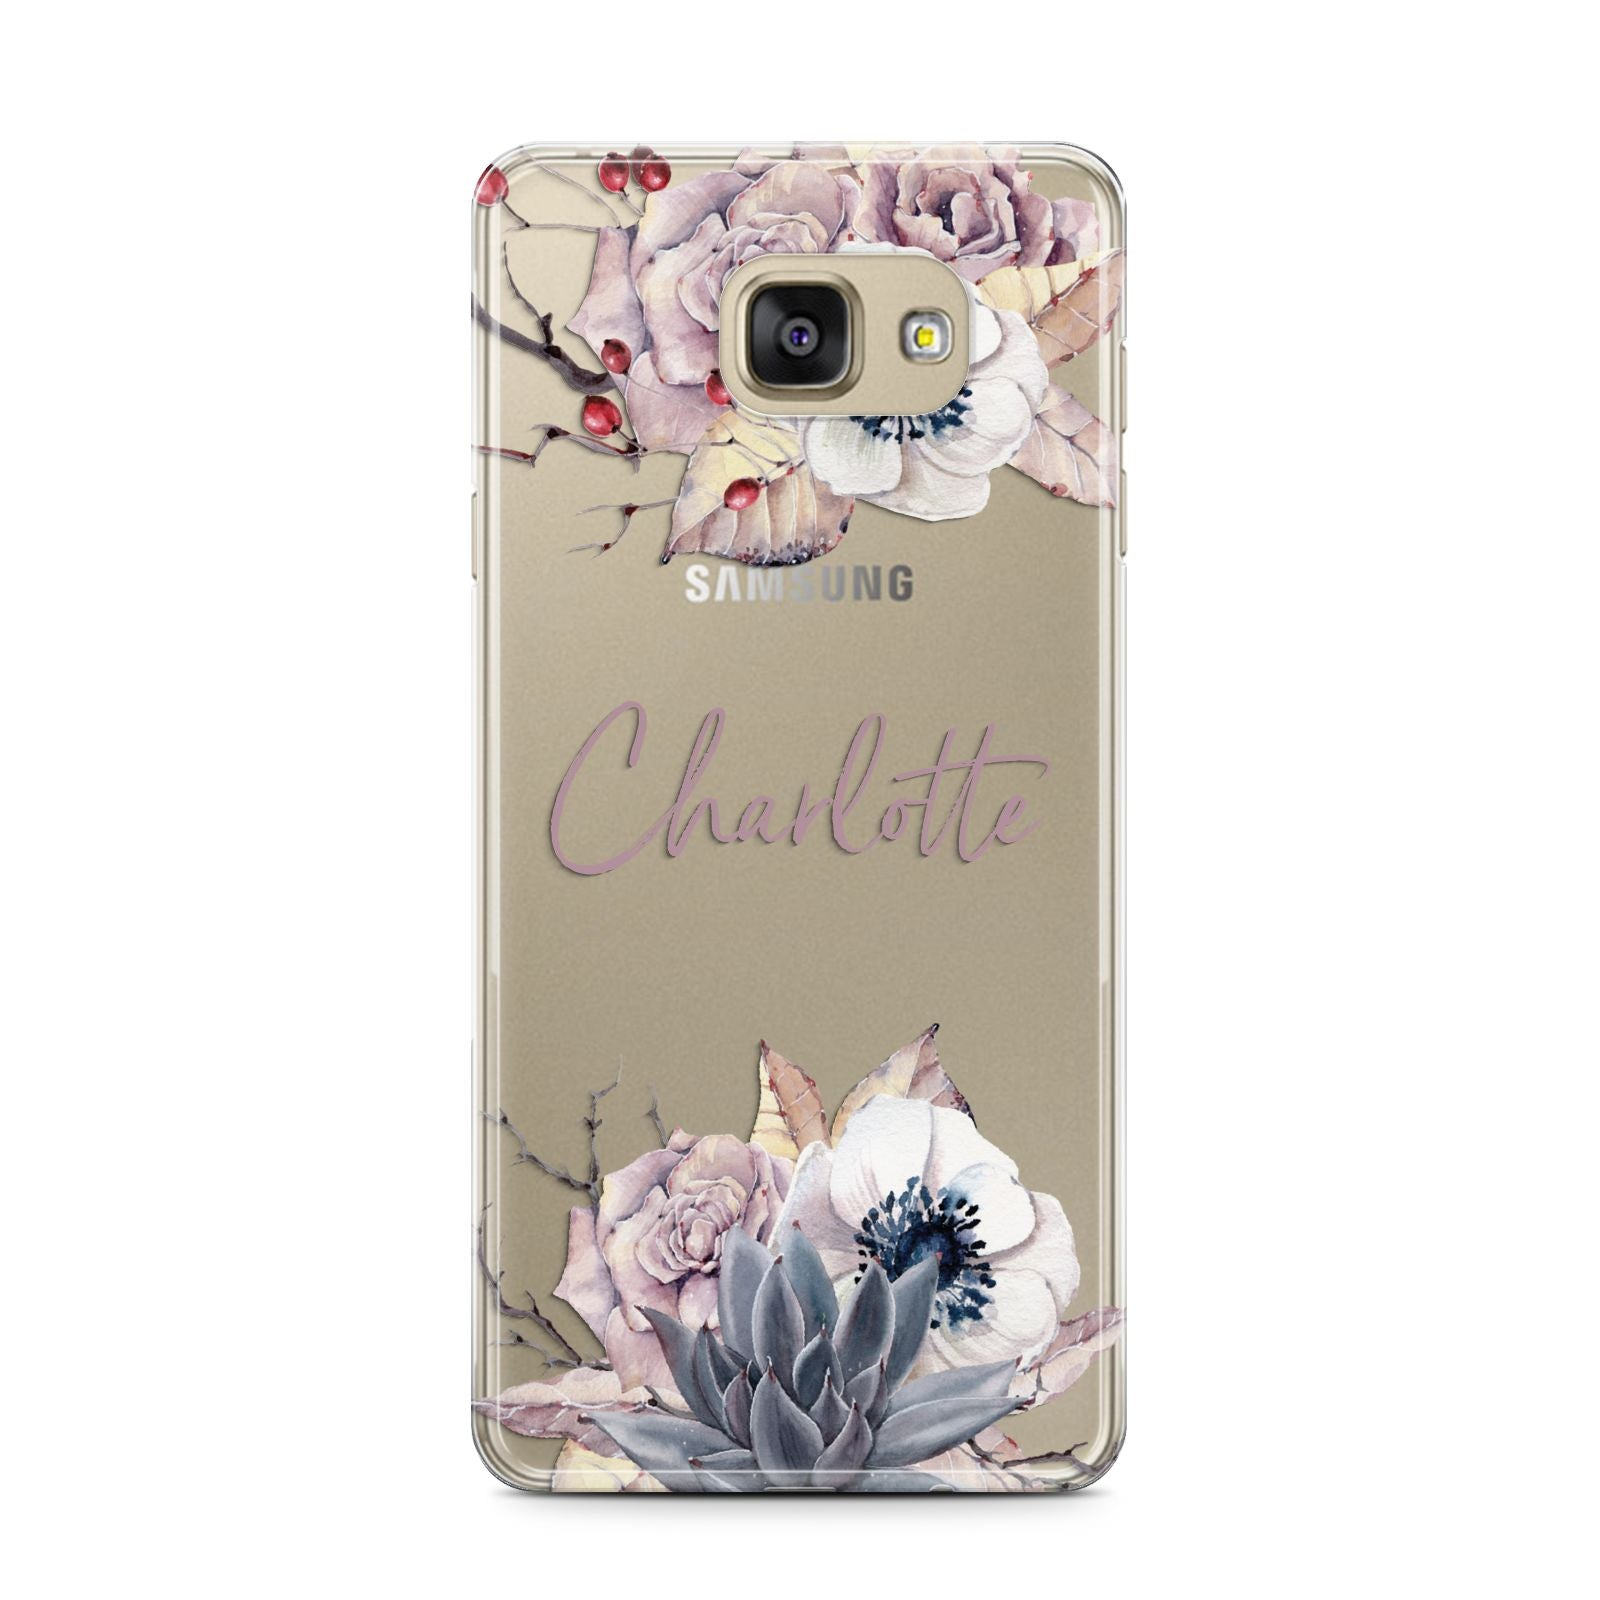 Personalised Autumn Floral Samsung Galaxy A7 2016 Case on gold phone